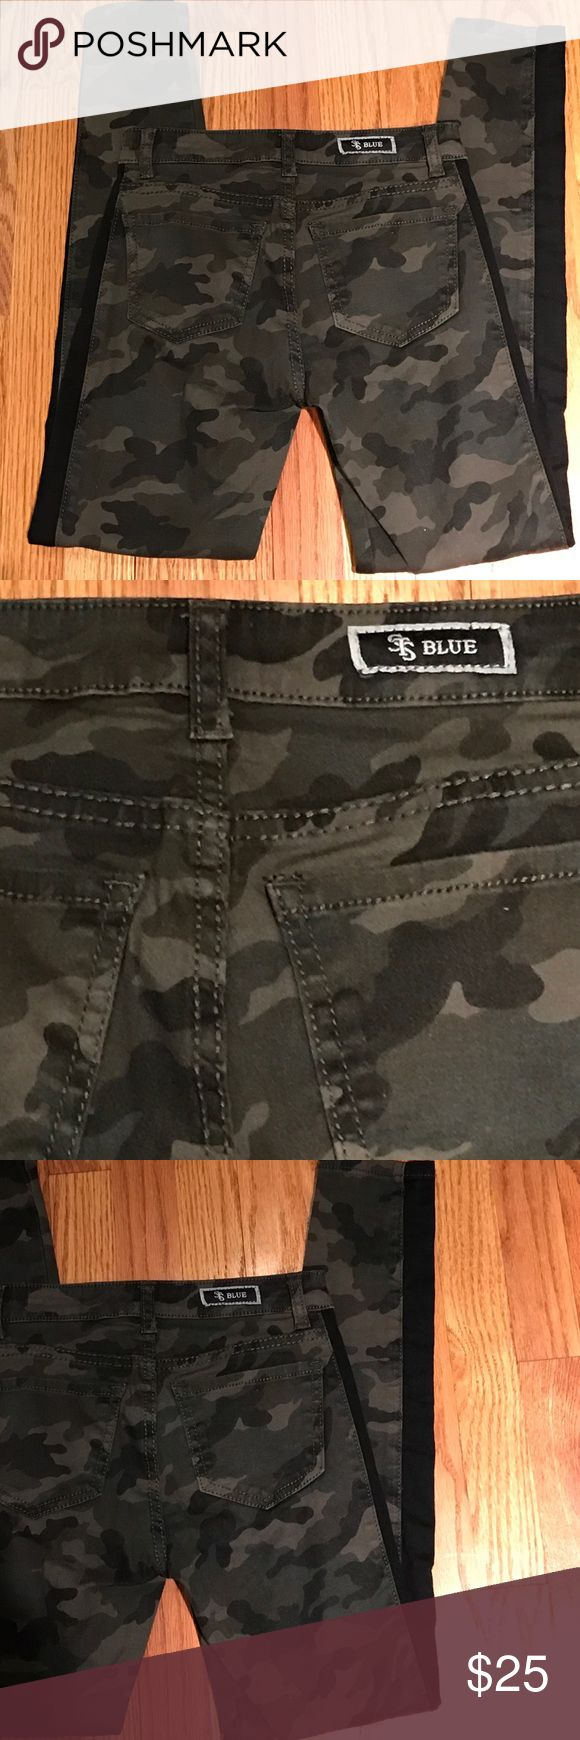 Sts blue 0 nordstroms camo skinny pants Sts blue 0 nordstroms camo skinny pants in like new clean condition. A little stretch of spandex in these pants. Black stripe down the sides.  Consigned to my boutique no trades. Waist is 12 inches laying flat. Inseam is 26.5 inches. STS blue  Pants Skinny